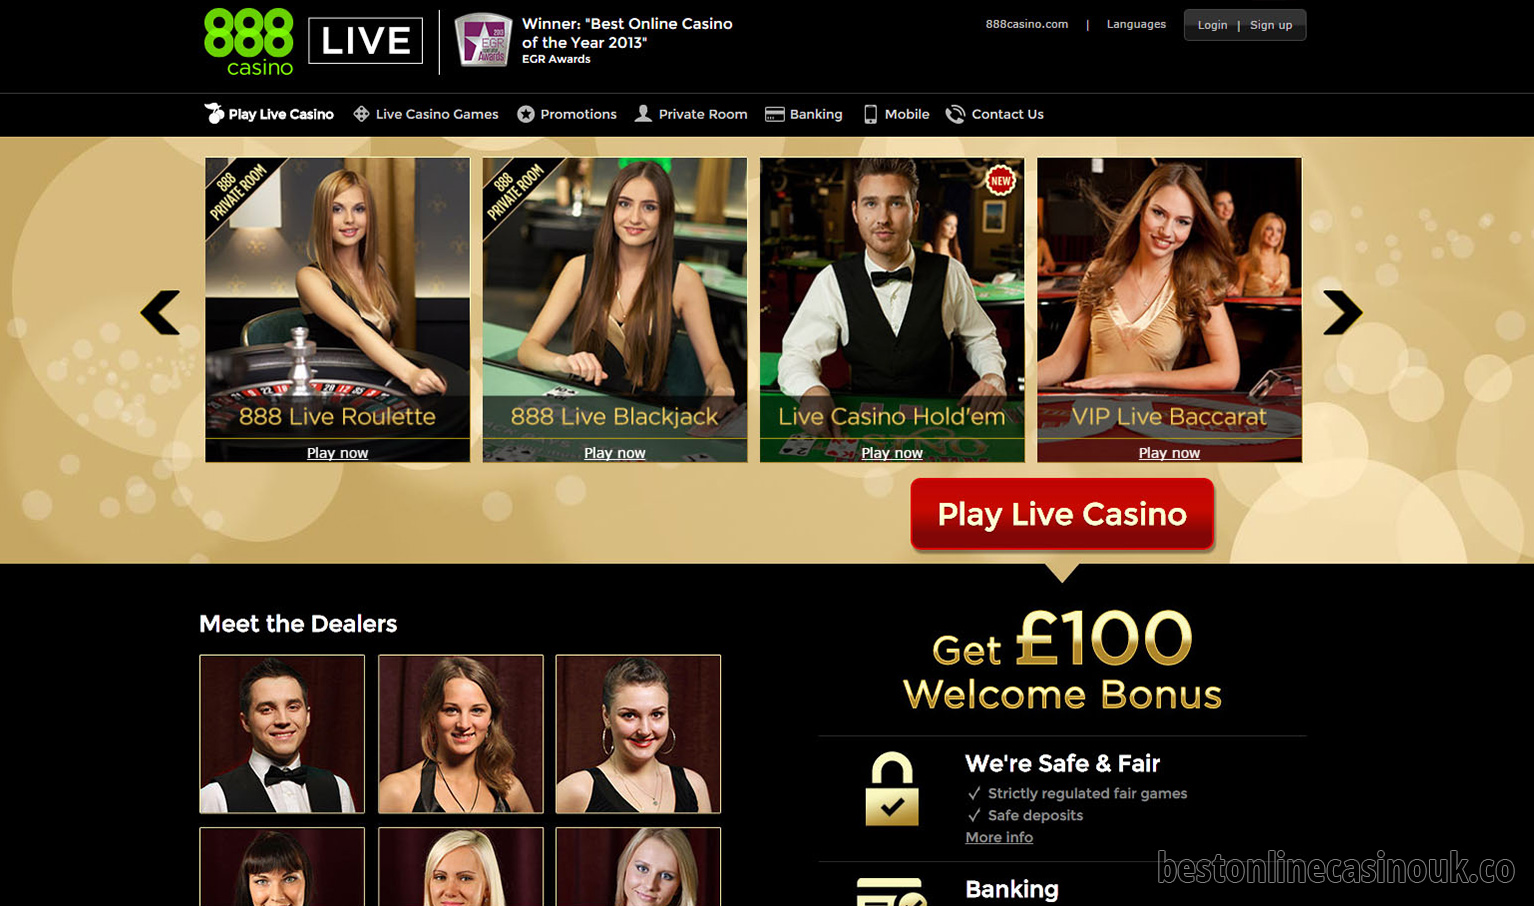 online casino reviewer sizlling hot